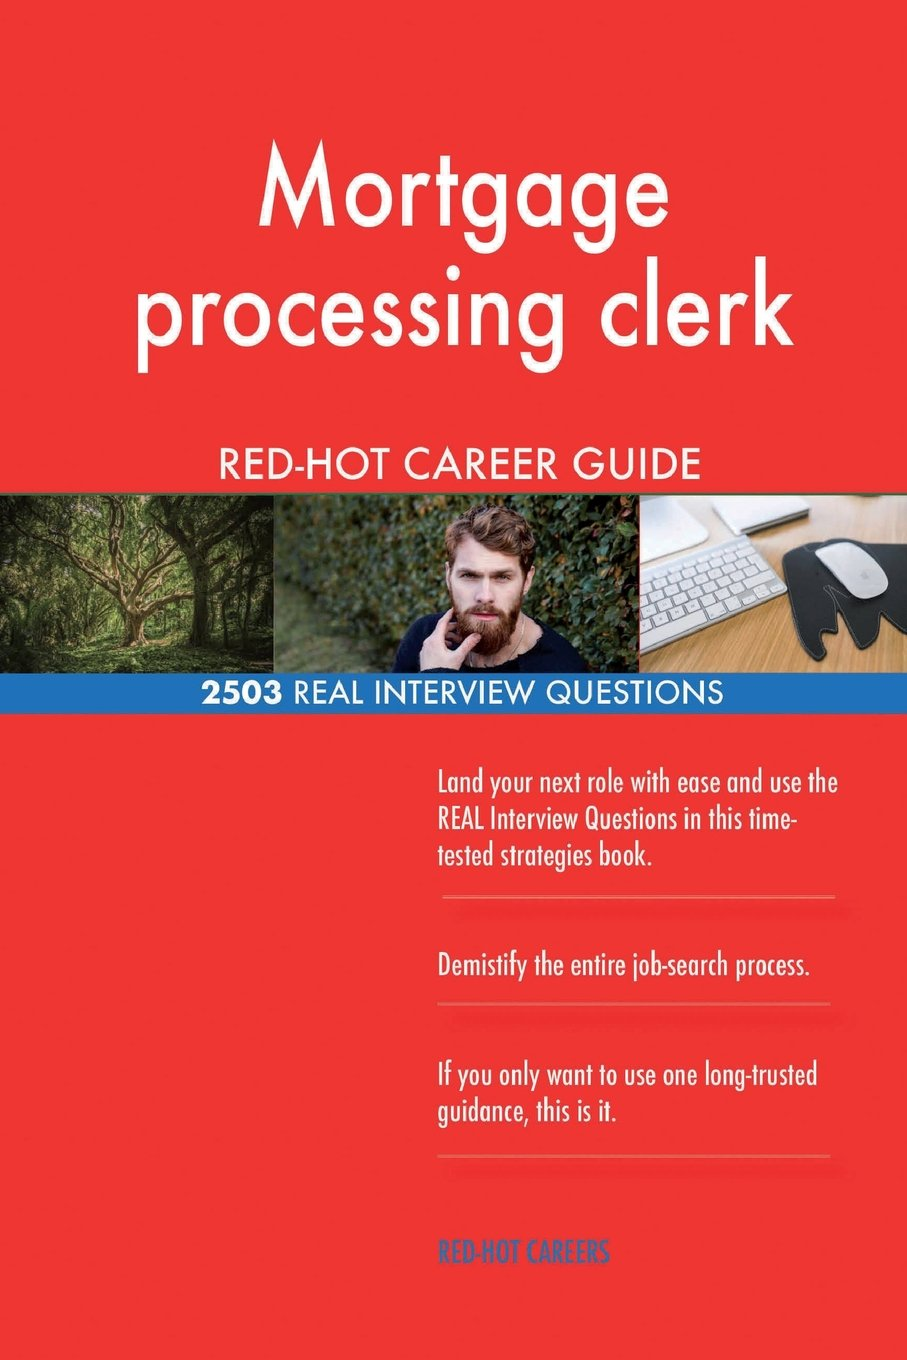 Mortgage processing clerk RED-HOT Career Guide; 2503 REAL Interview Questions pdf